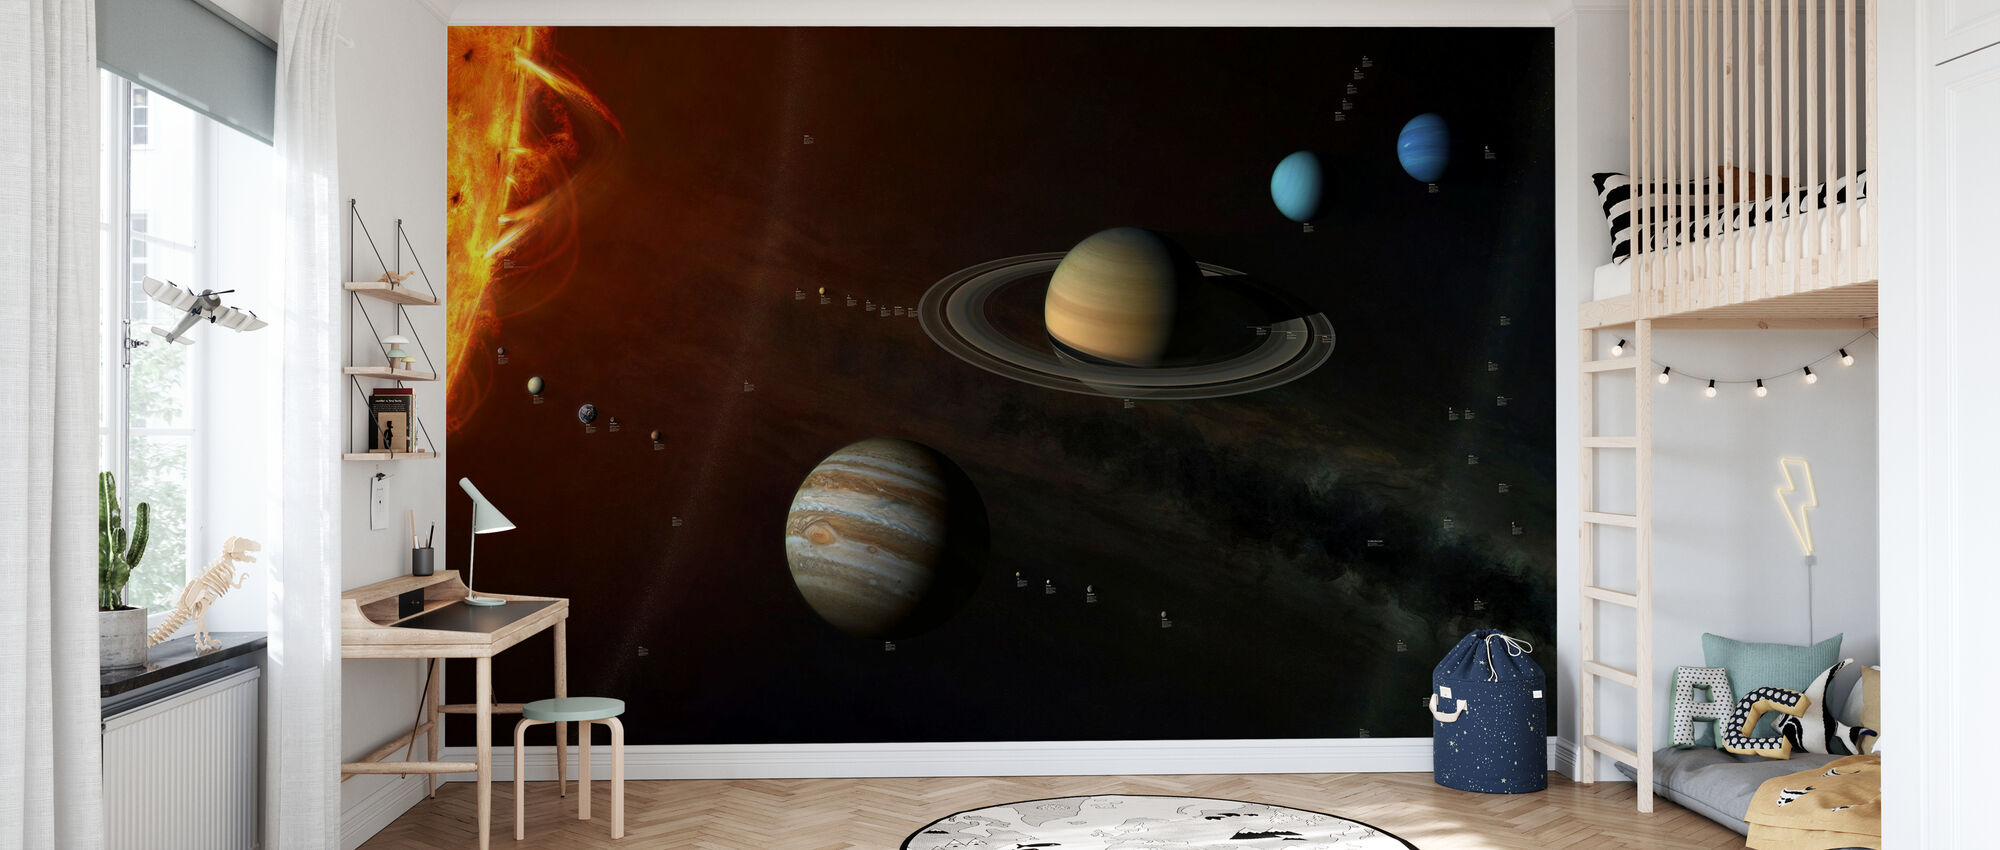 Solar System - With info labels - Wallpaper - Kids Room